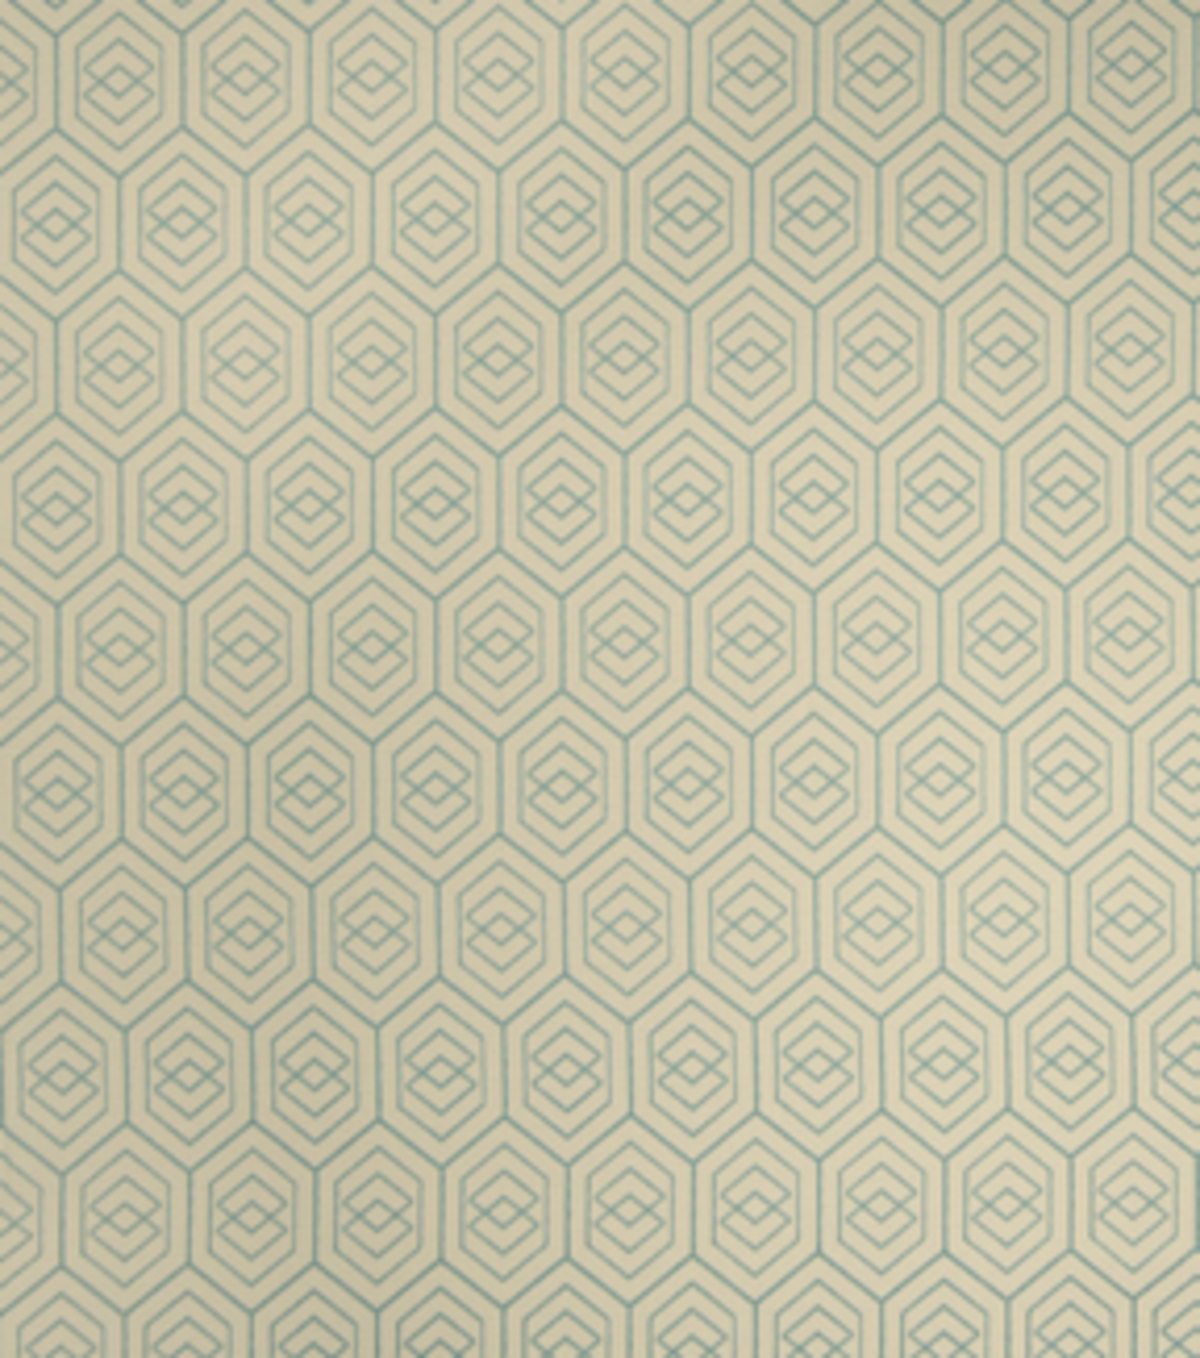 Home Decor 8\u0022x8\u0022 Fabric Swatch-Eaton Square Fleming Island Blue